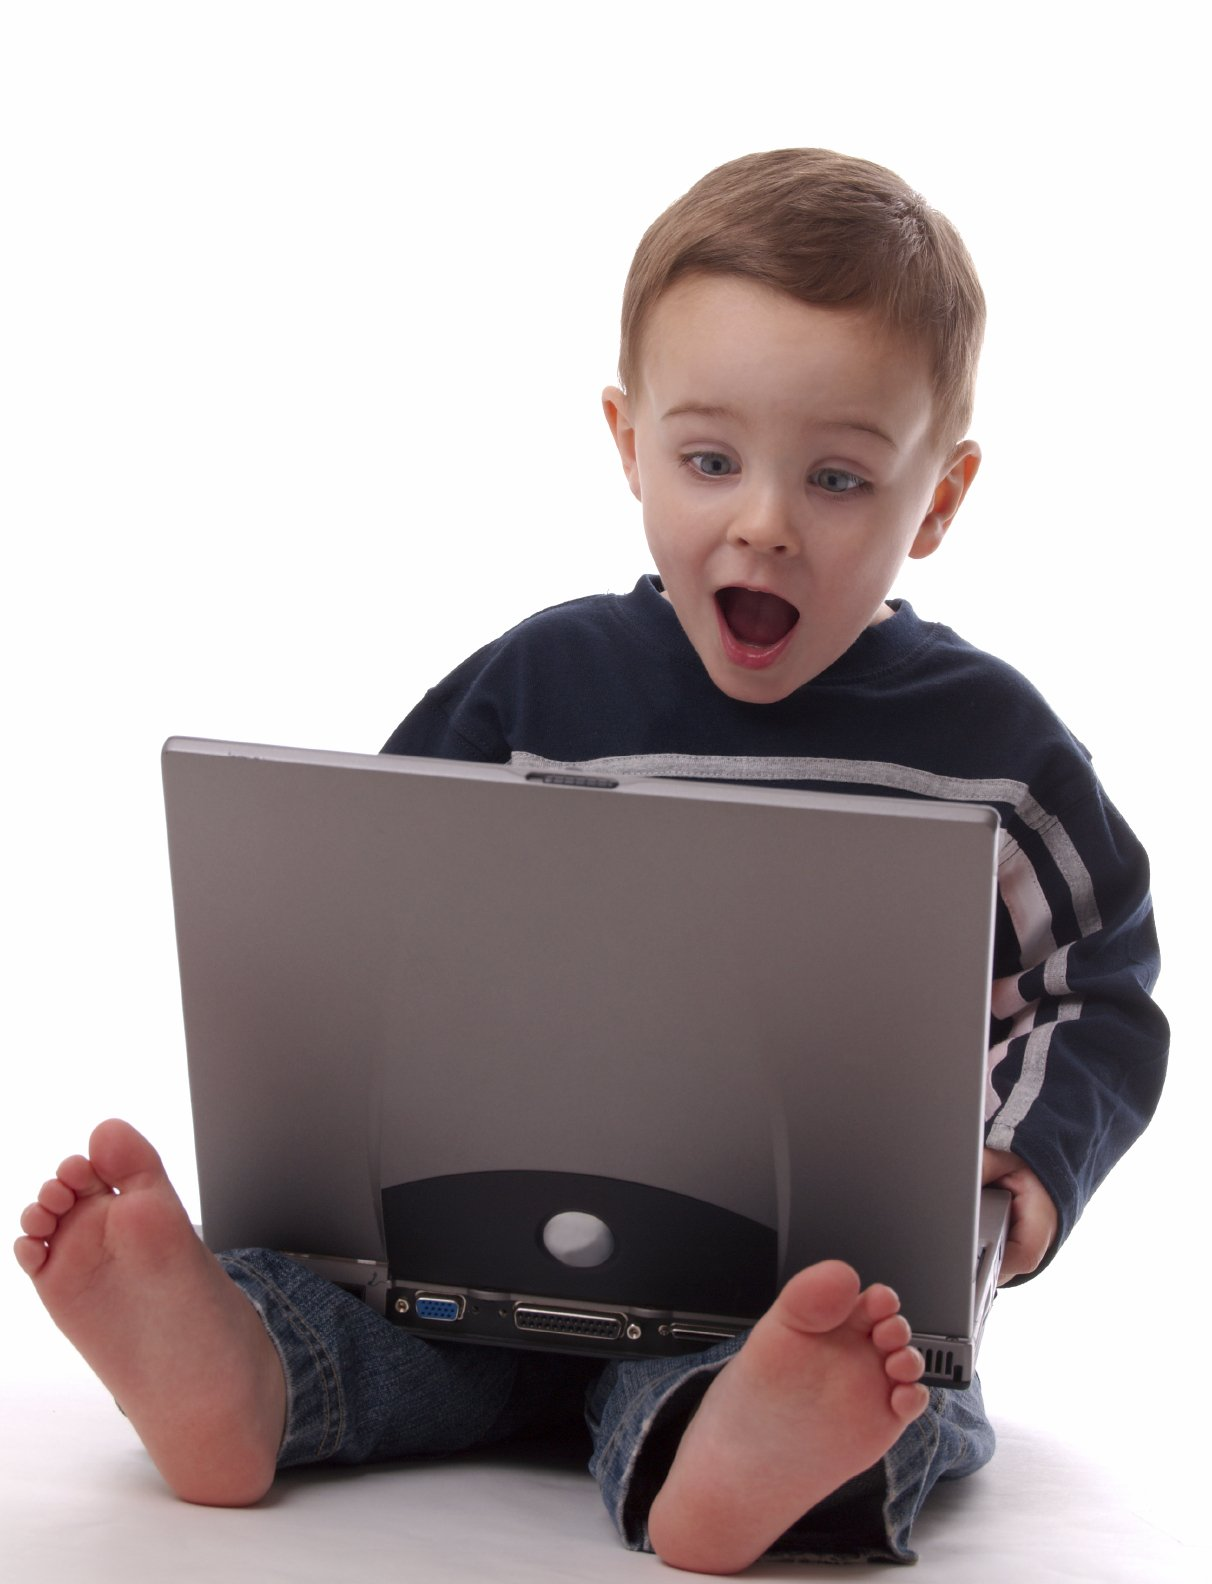 When should a child be allowed their own laptop?